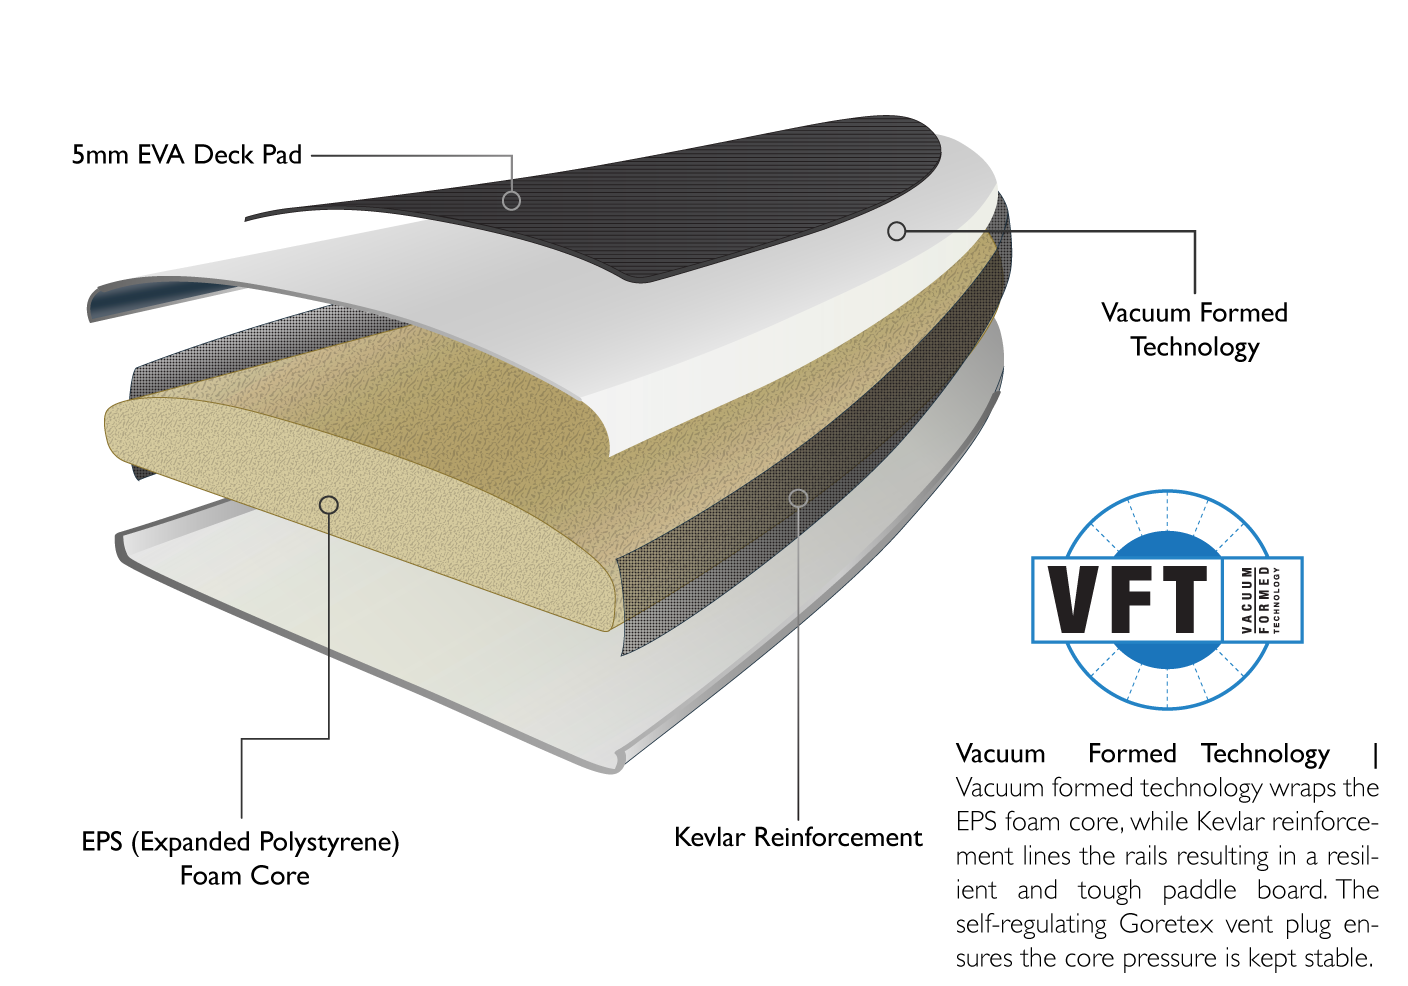 VFT construction graphic